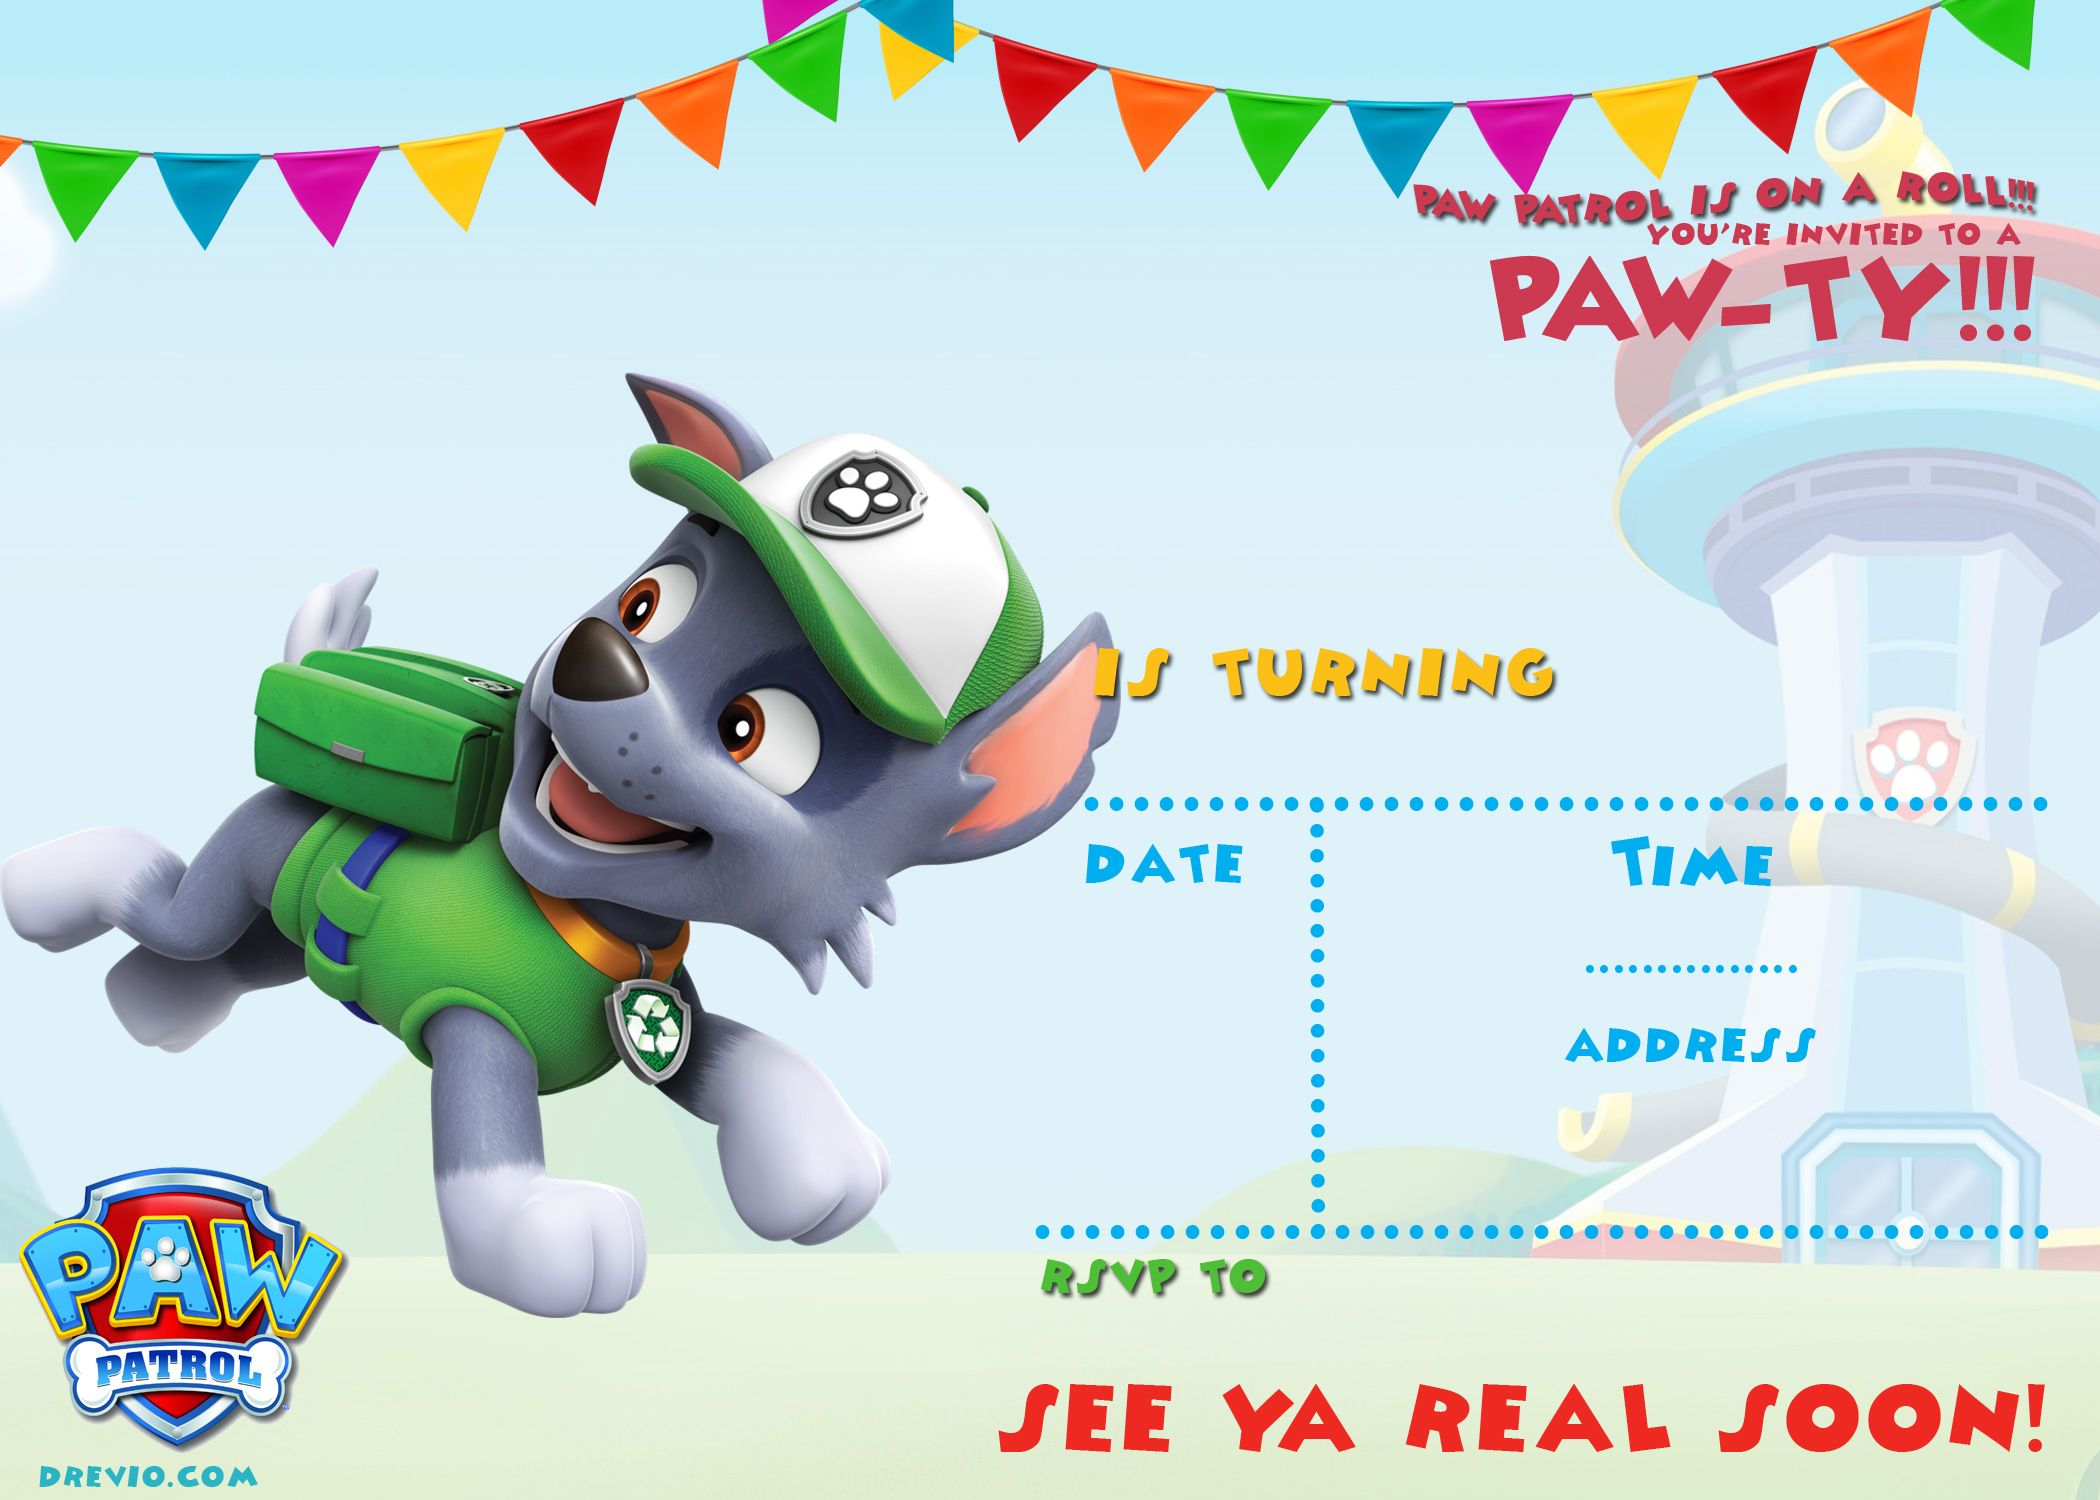 photo about Free Printable Paw Patrol Invitations named No cost Printable Paw Patrol Invitation Template - All